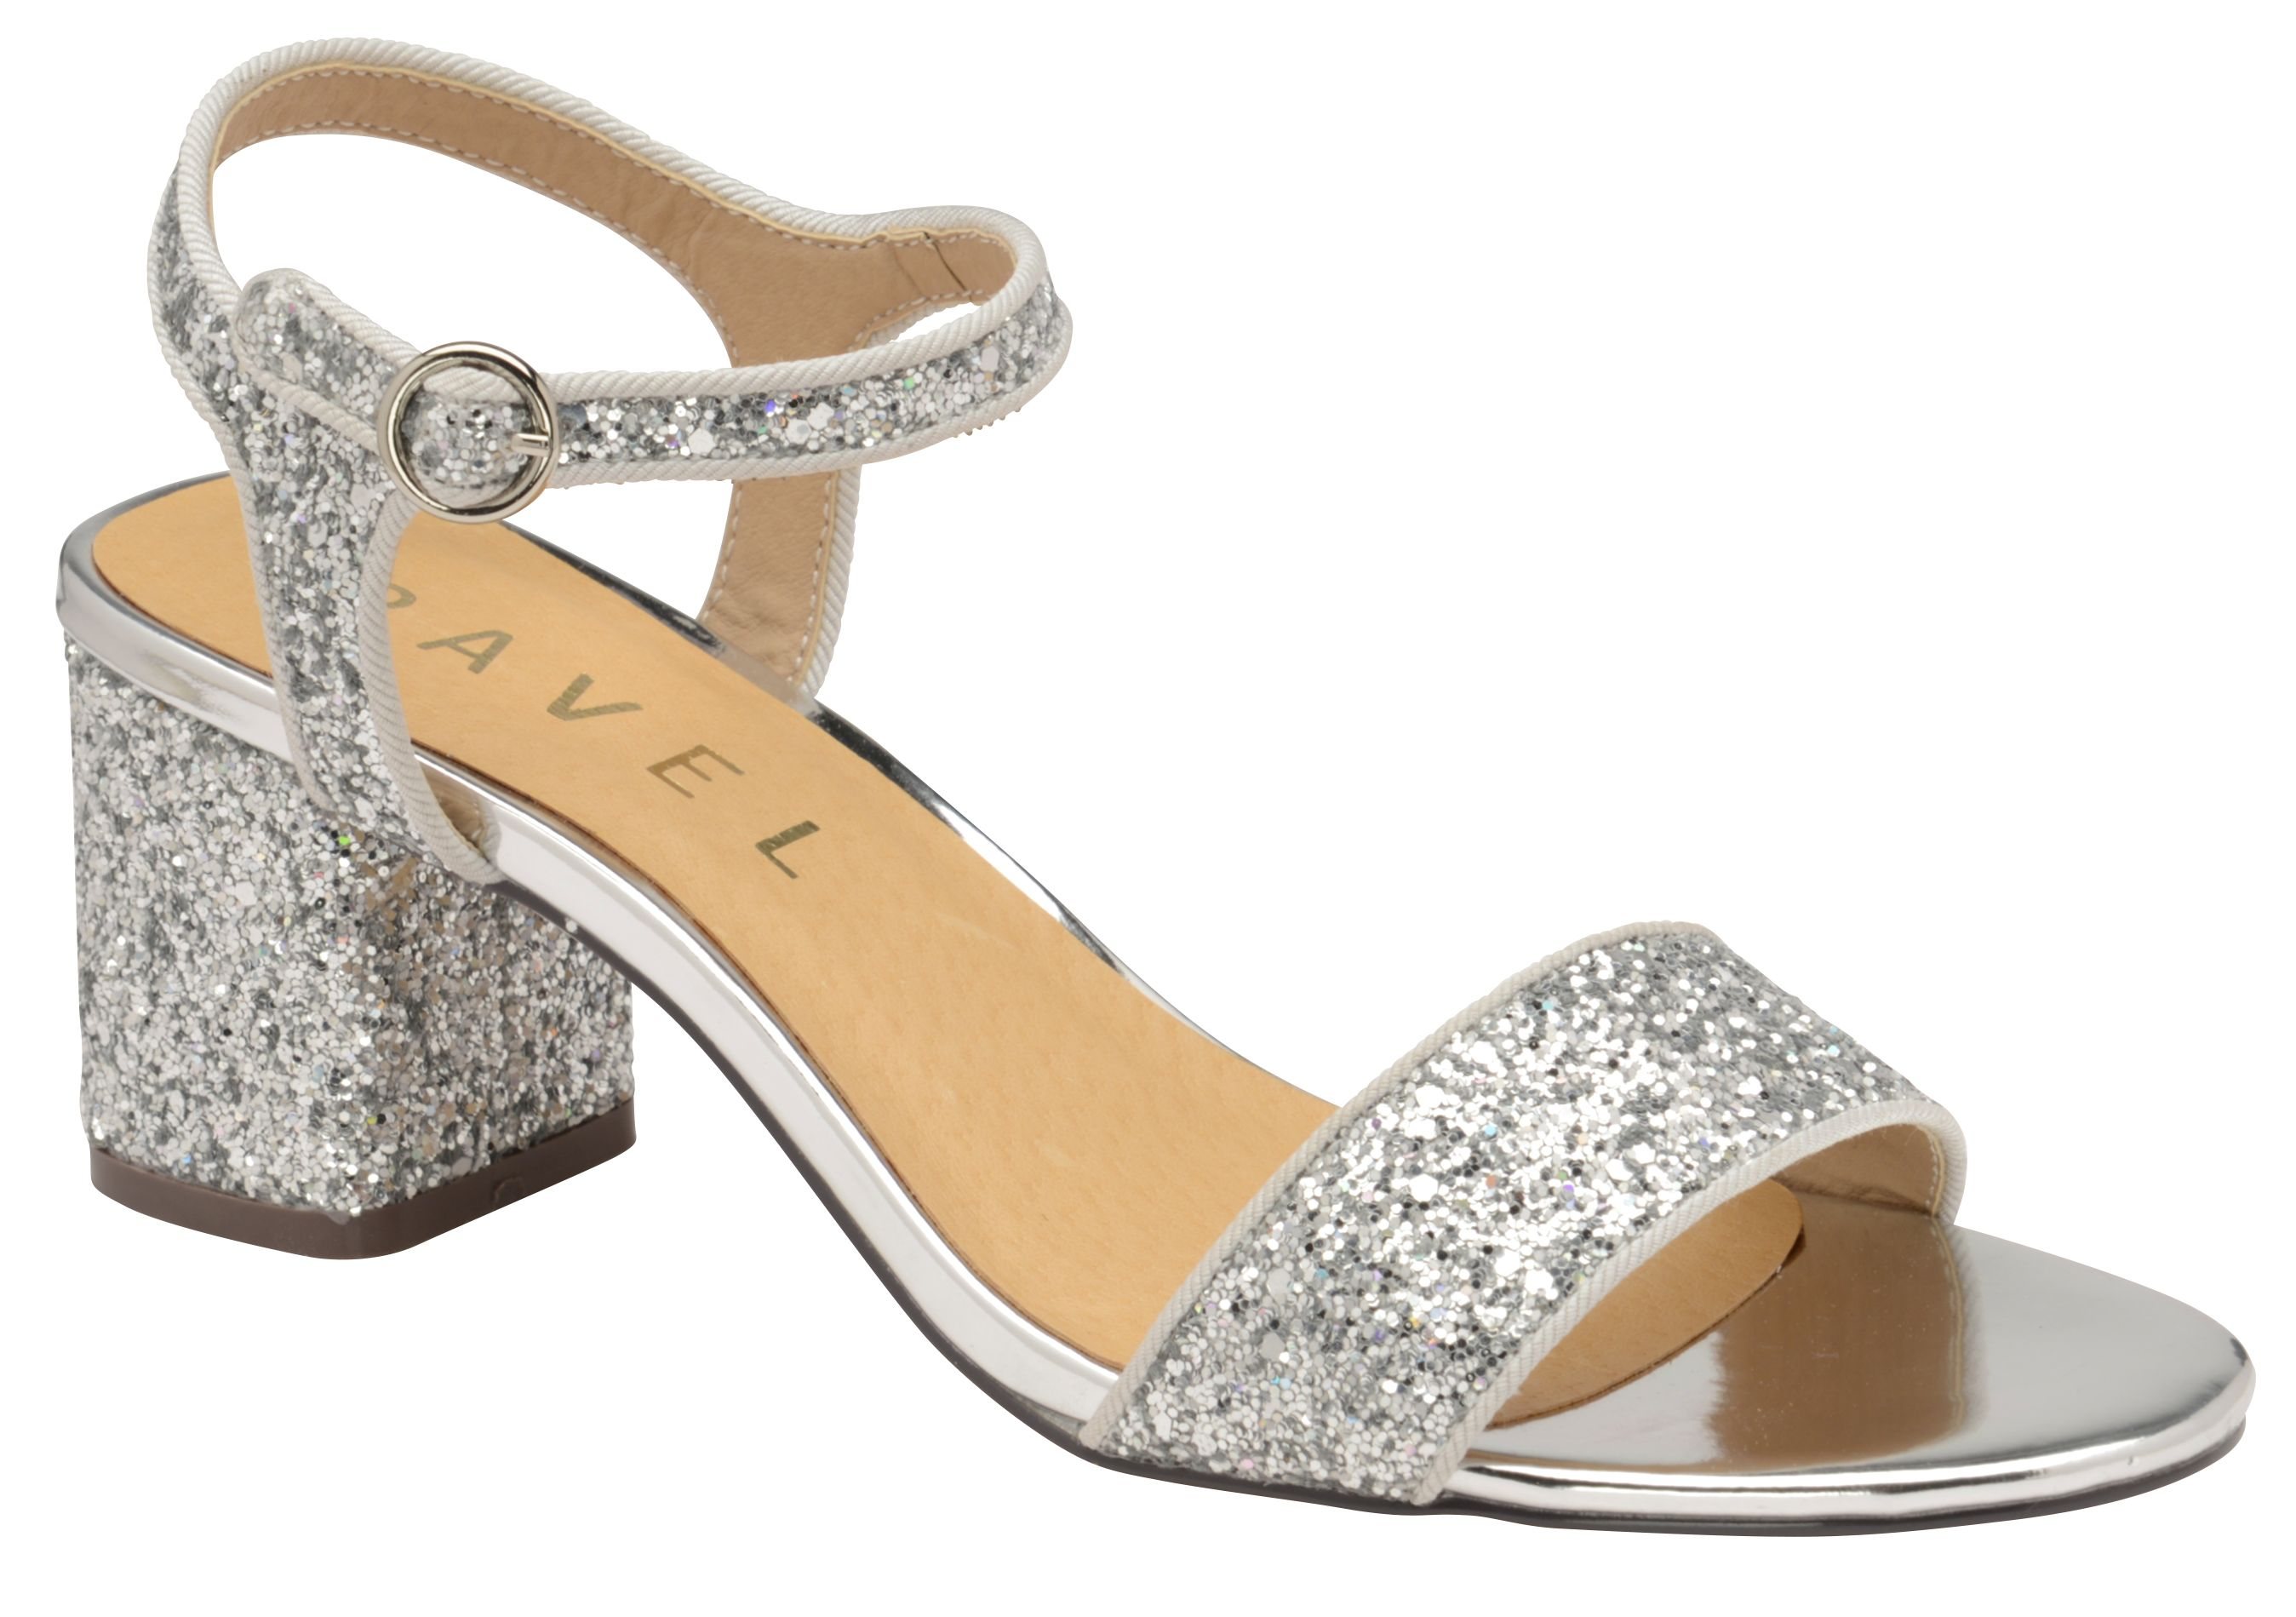 Ravel Gurley Heeled Sandals, Silver Silverlic